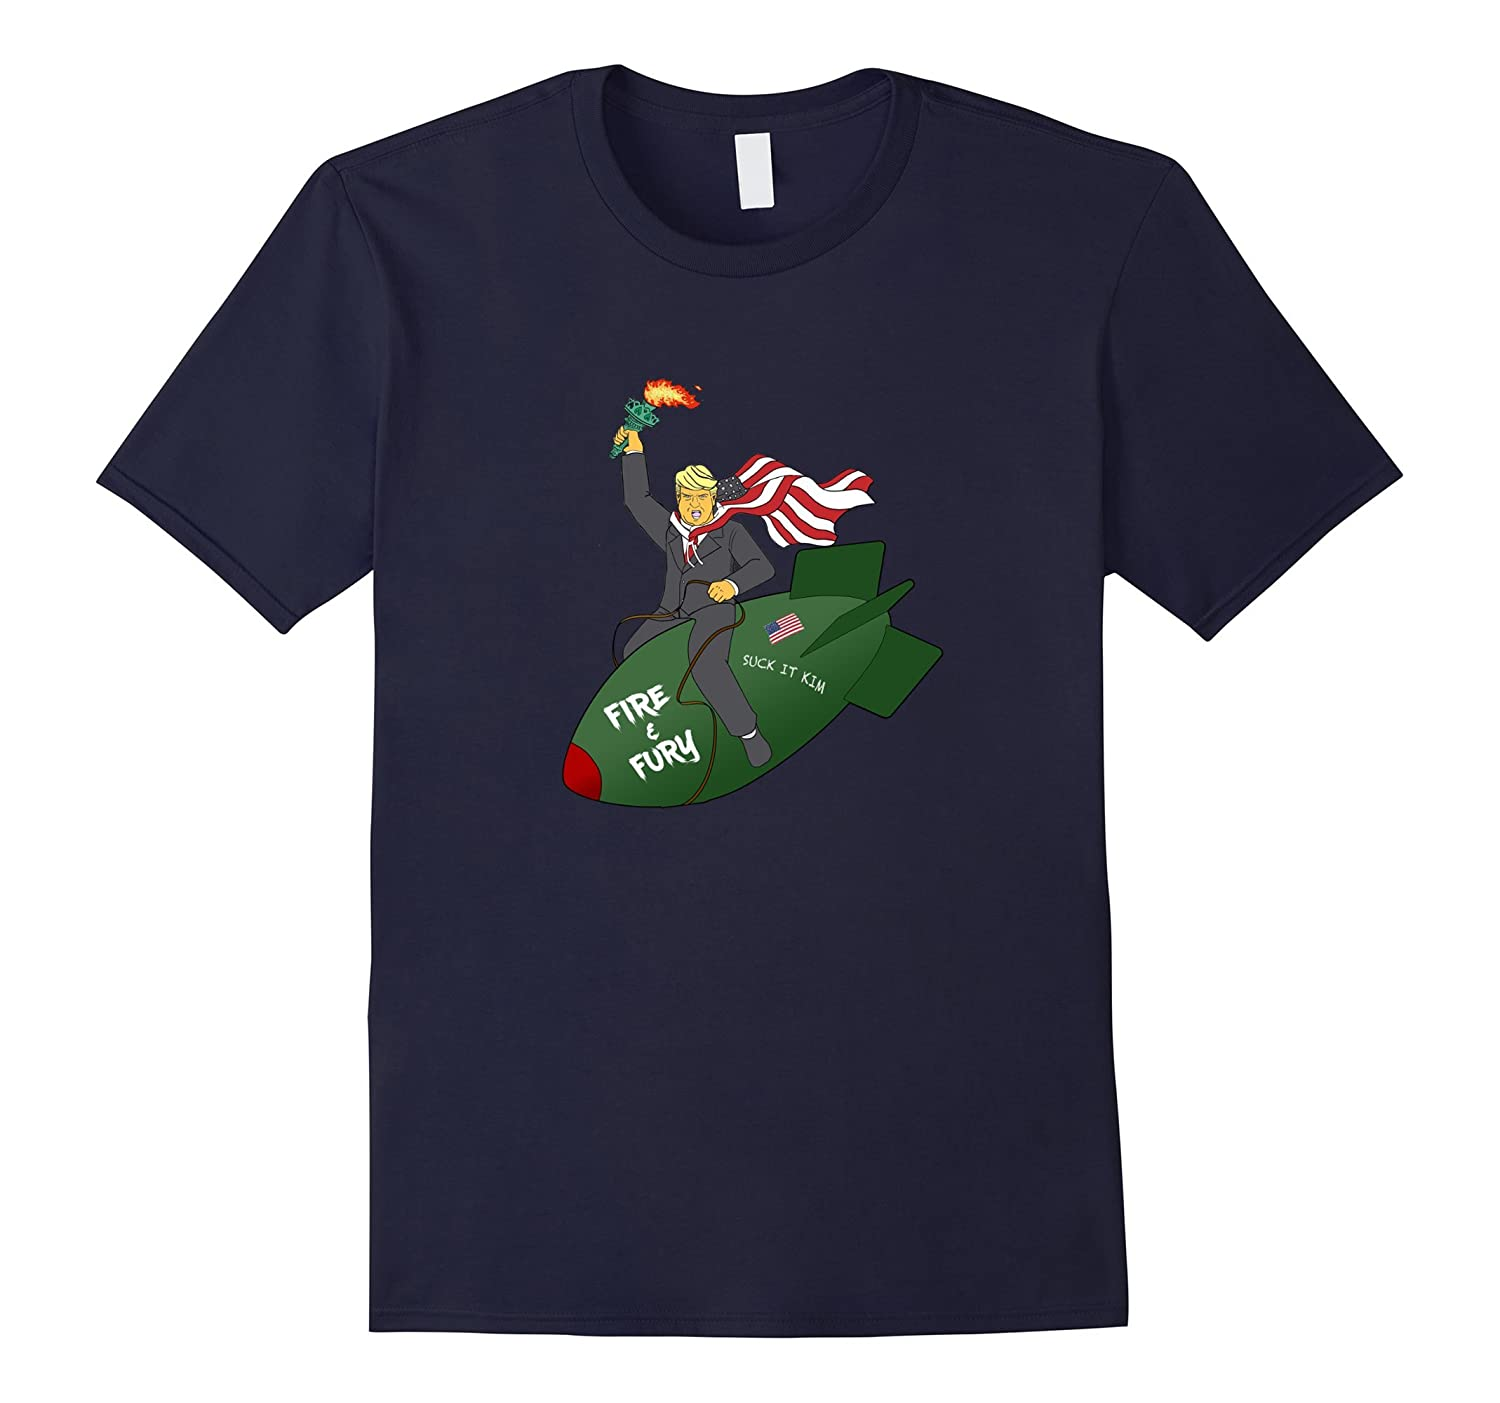 The Best TRUMP T-Shirt Ever! Trump Rides Fire and Fury Bomb-Art